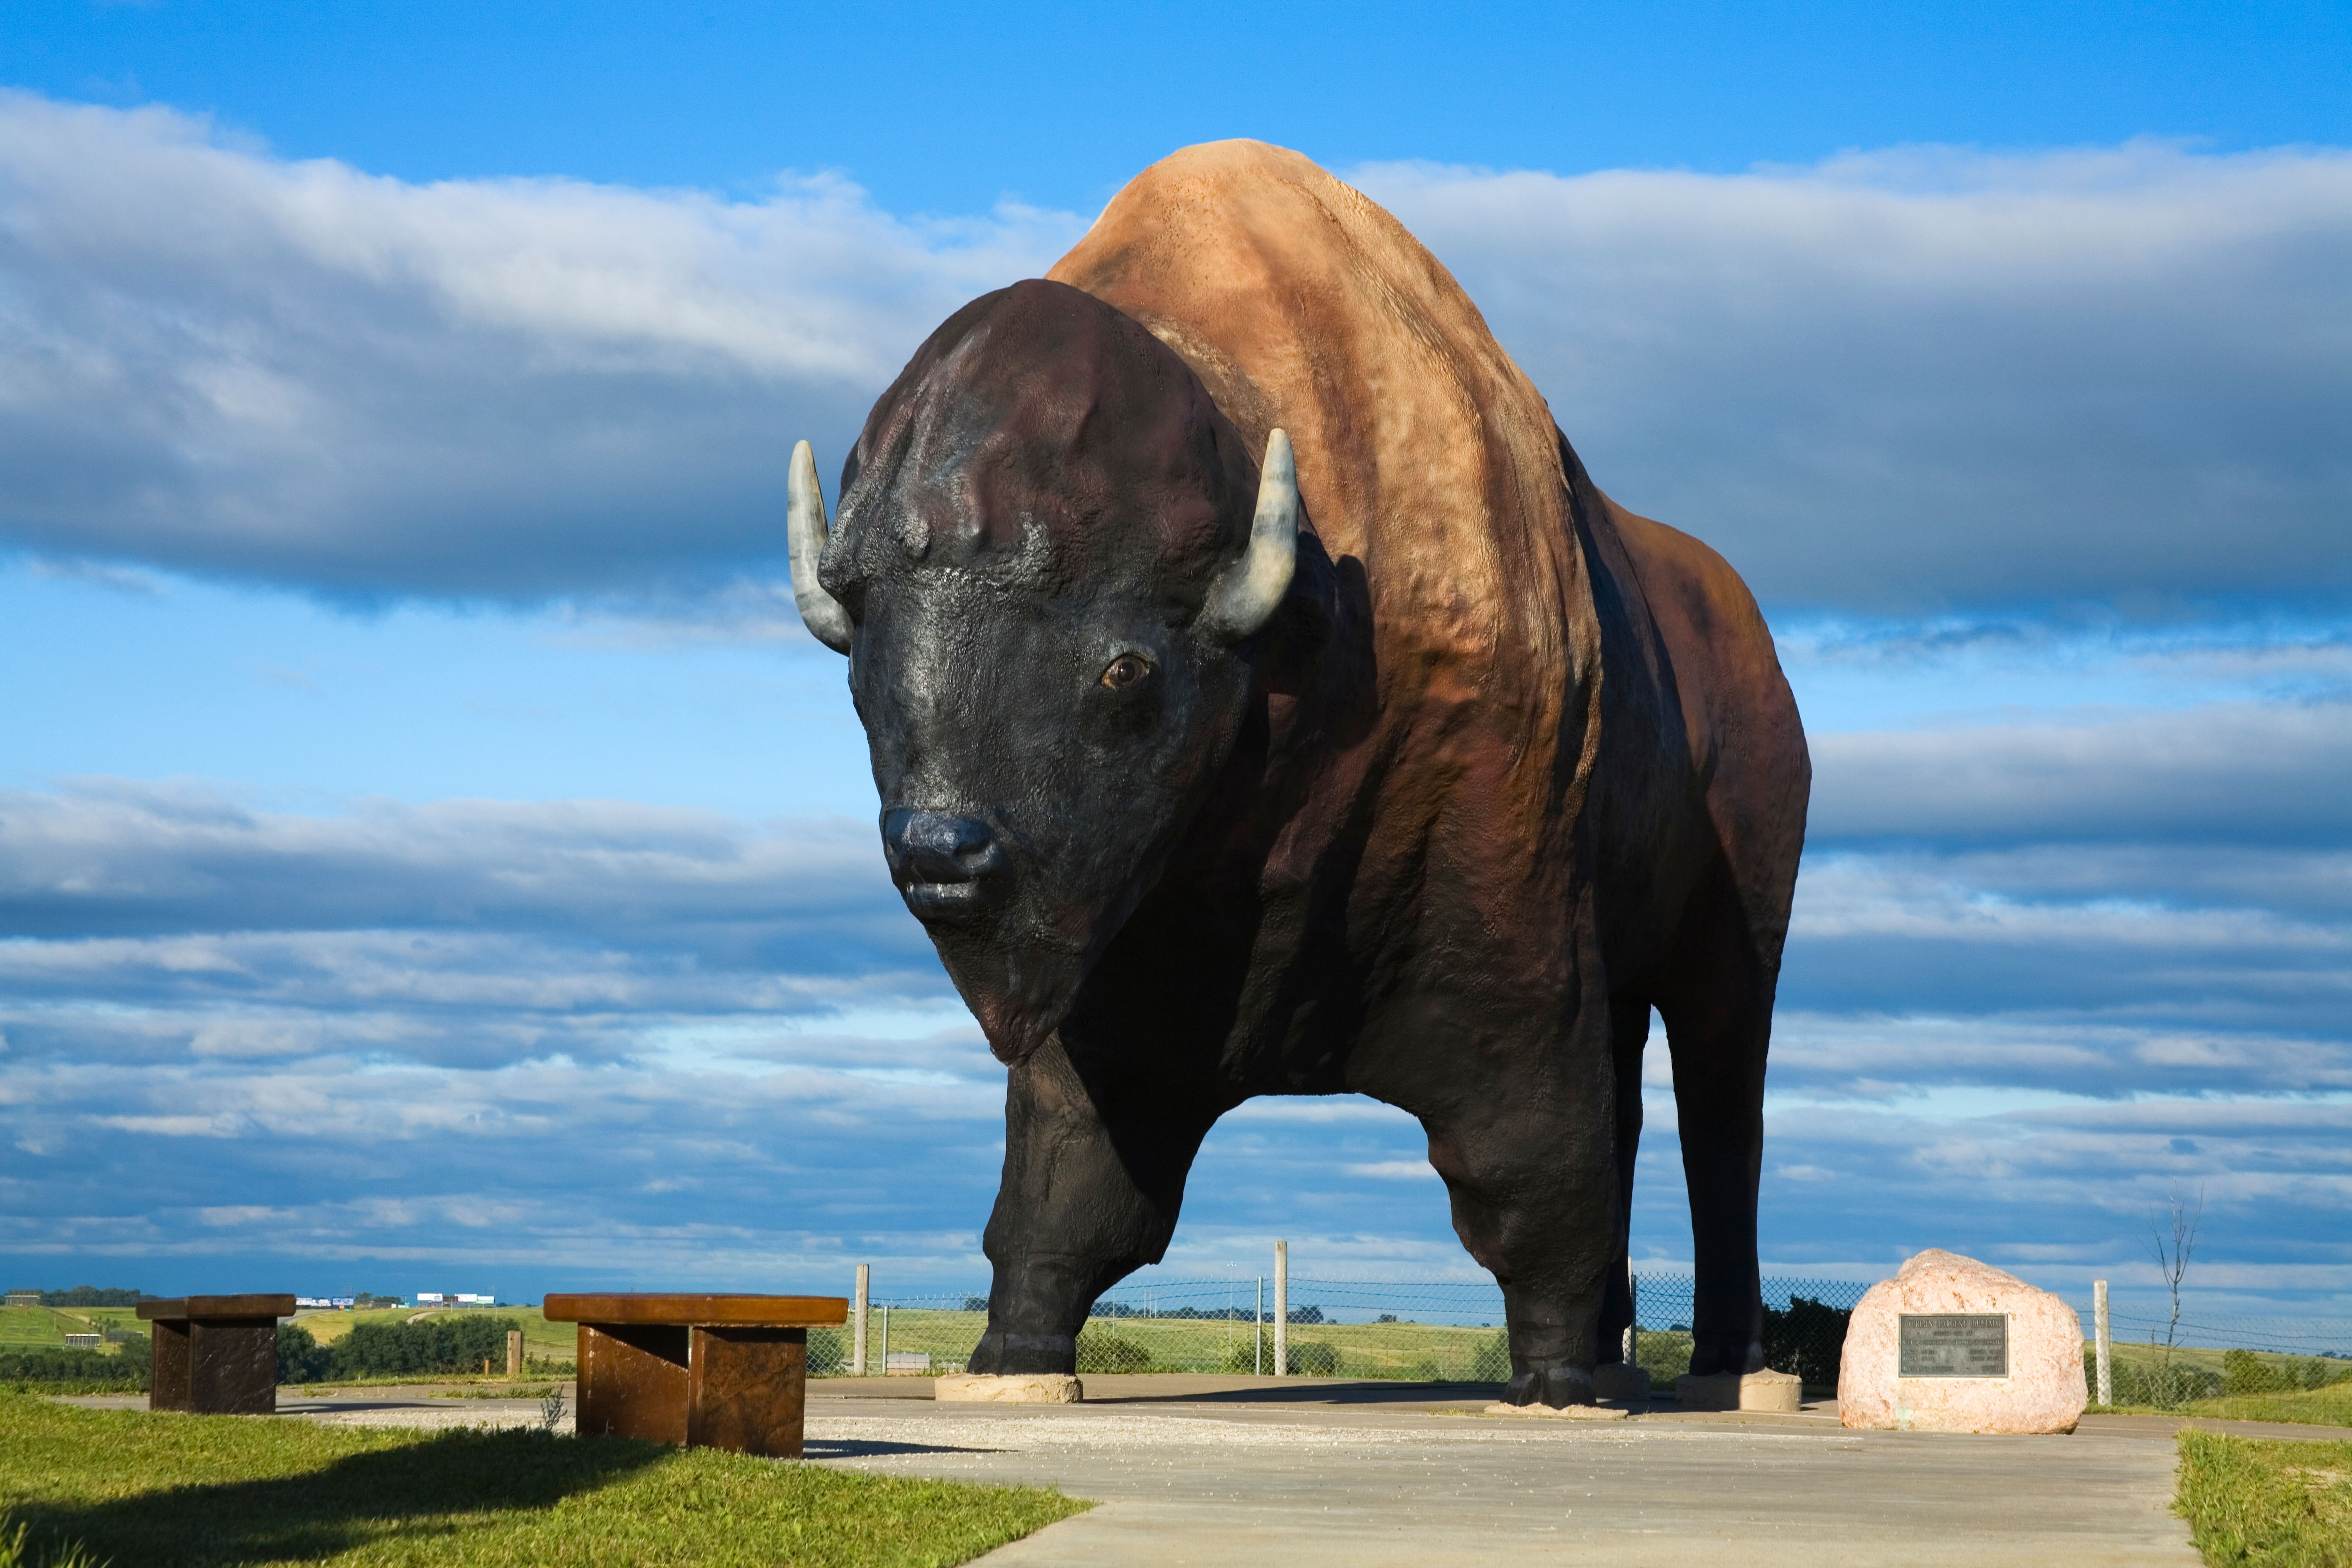 Huge statue of buffalo outdoors (© Richard Cummins/Alamy Stock Photo)